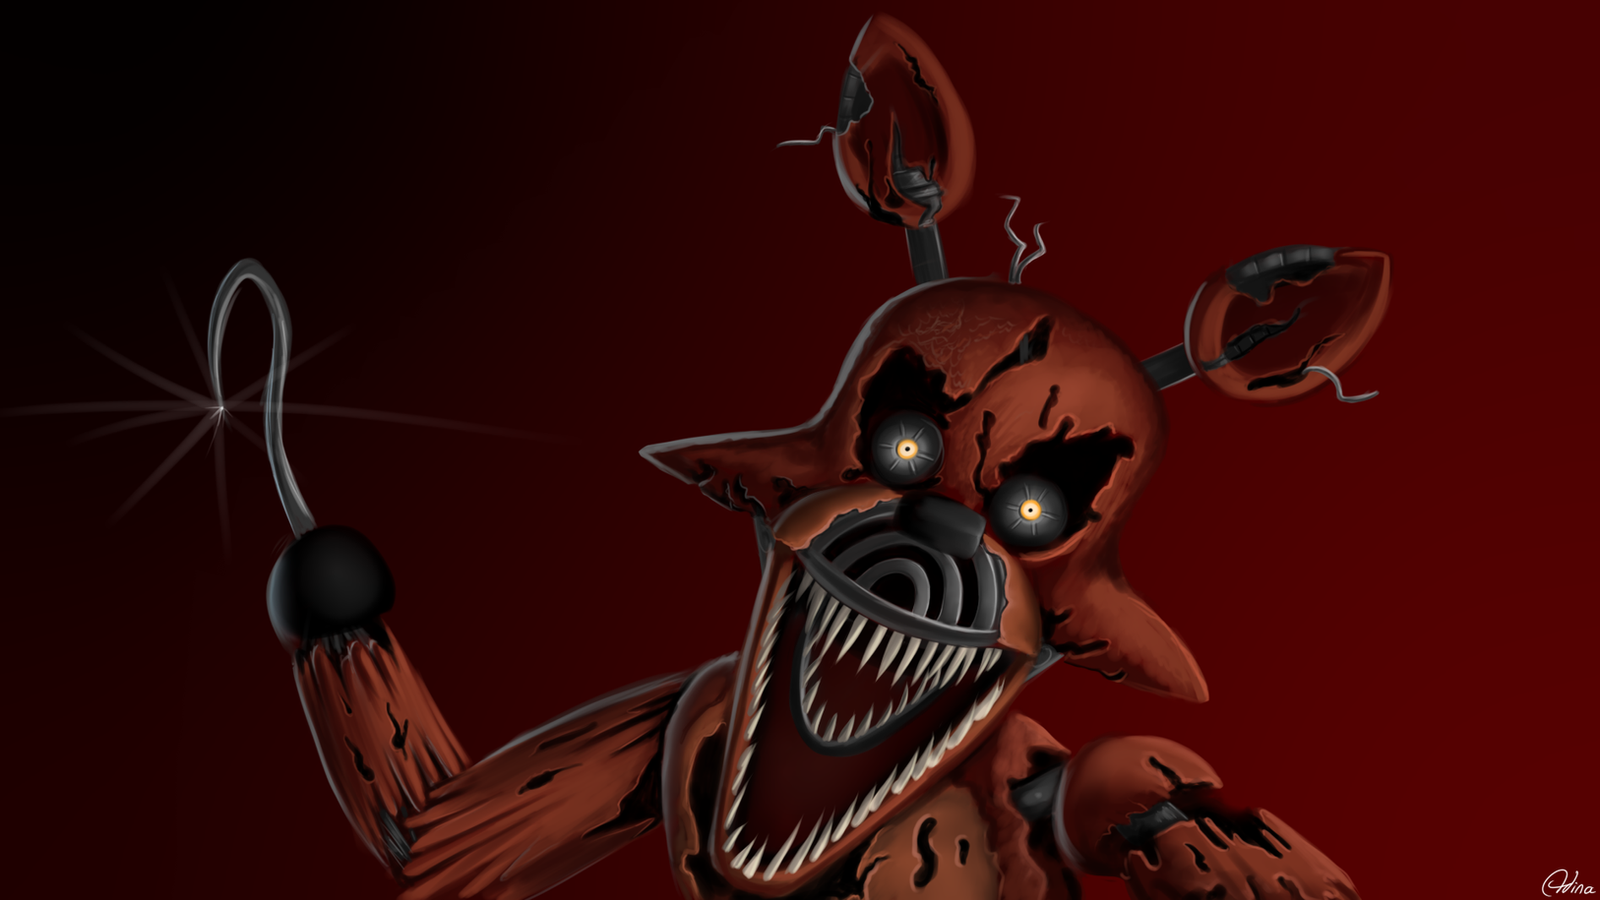 Nightmare Foxy wallpaper by FoxyPlush on DeviantArt